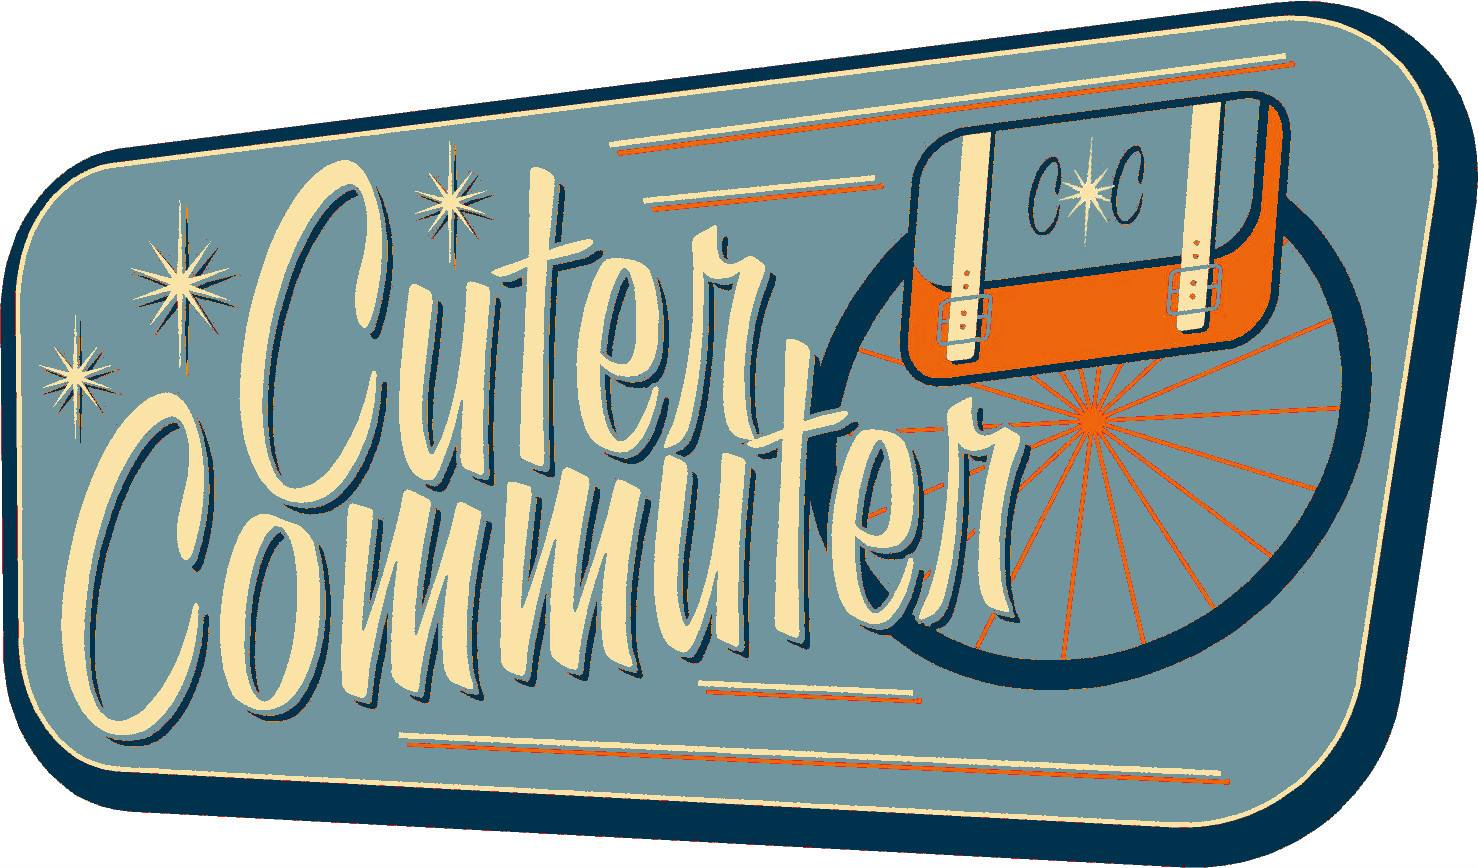 cutercommuter_logo.jpg